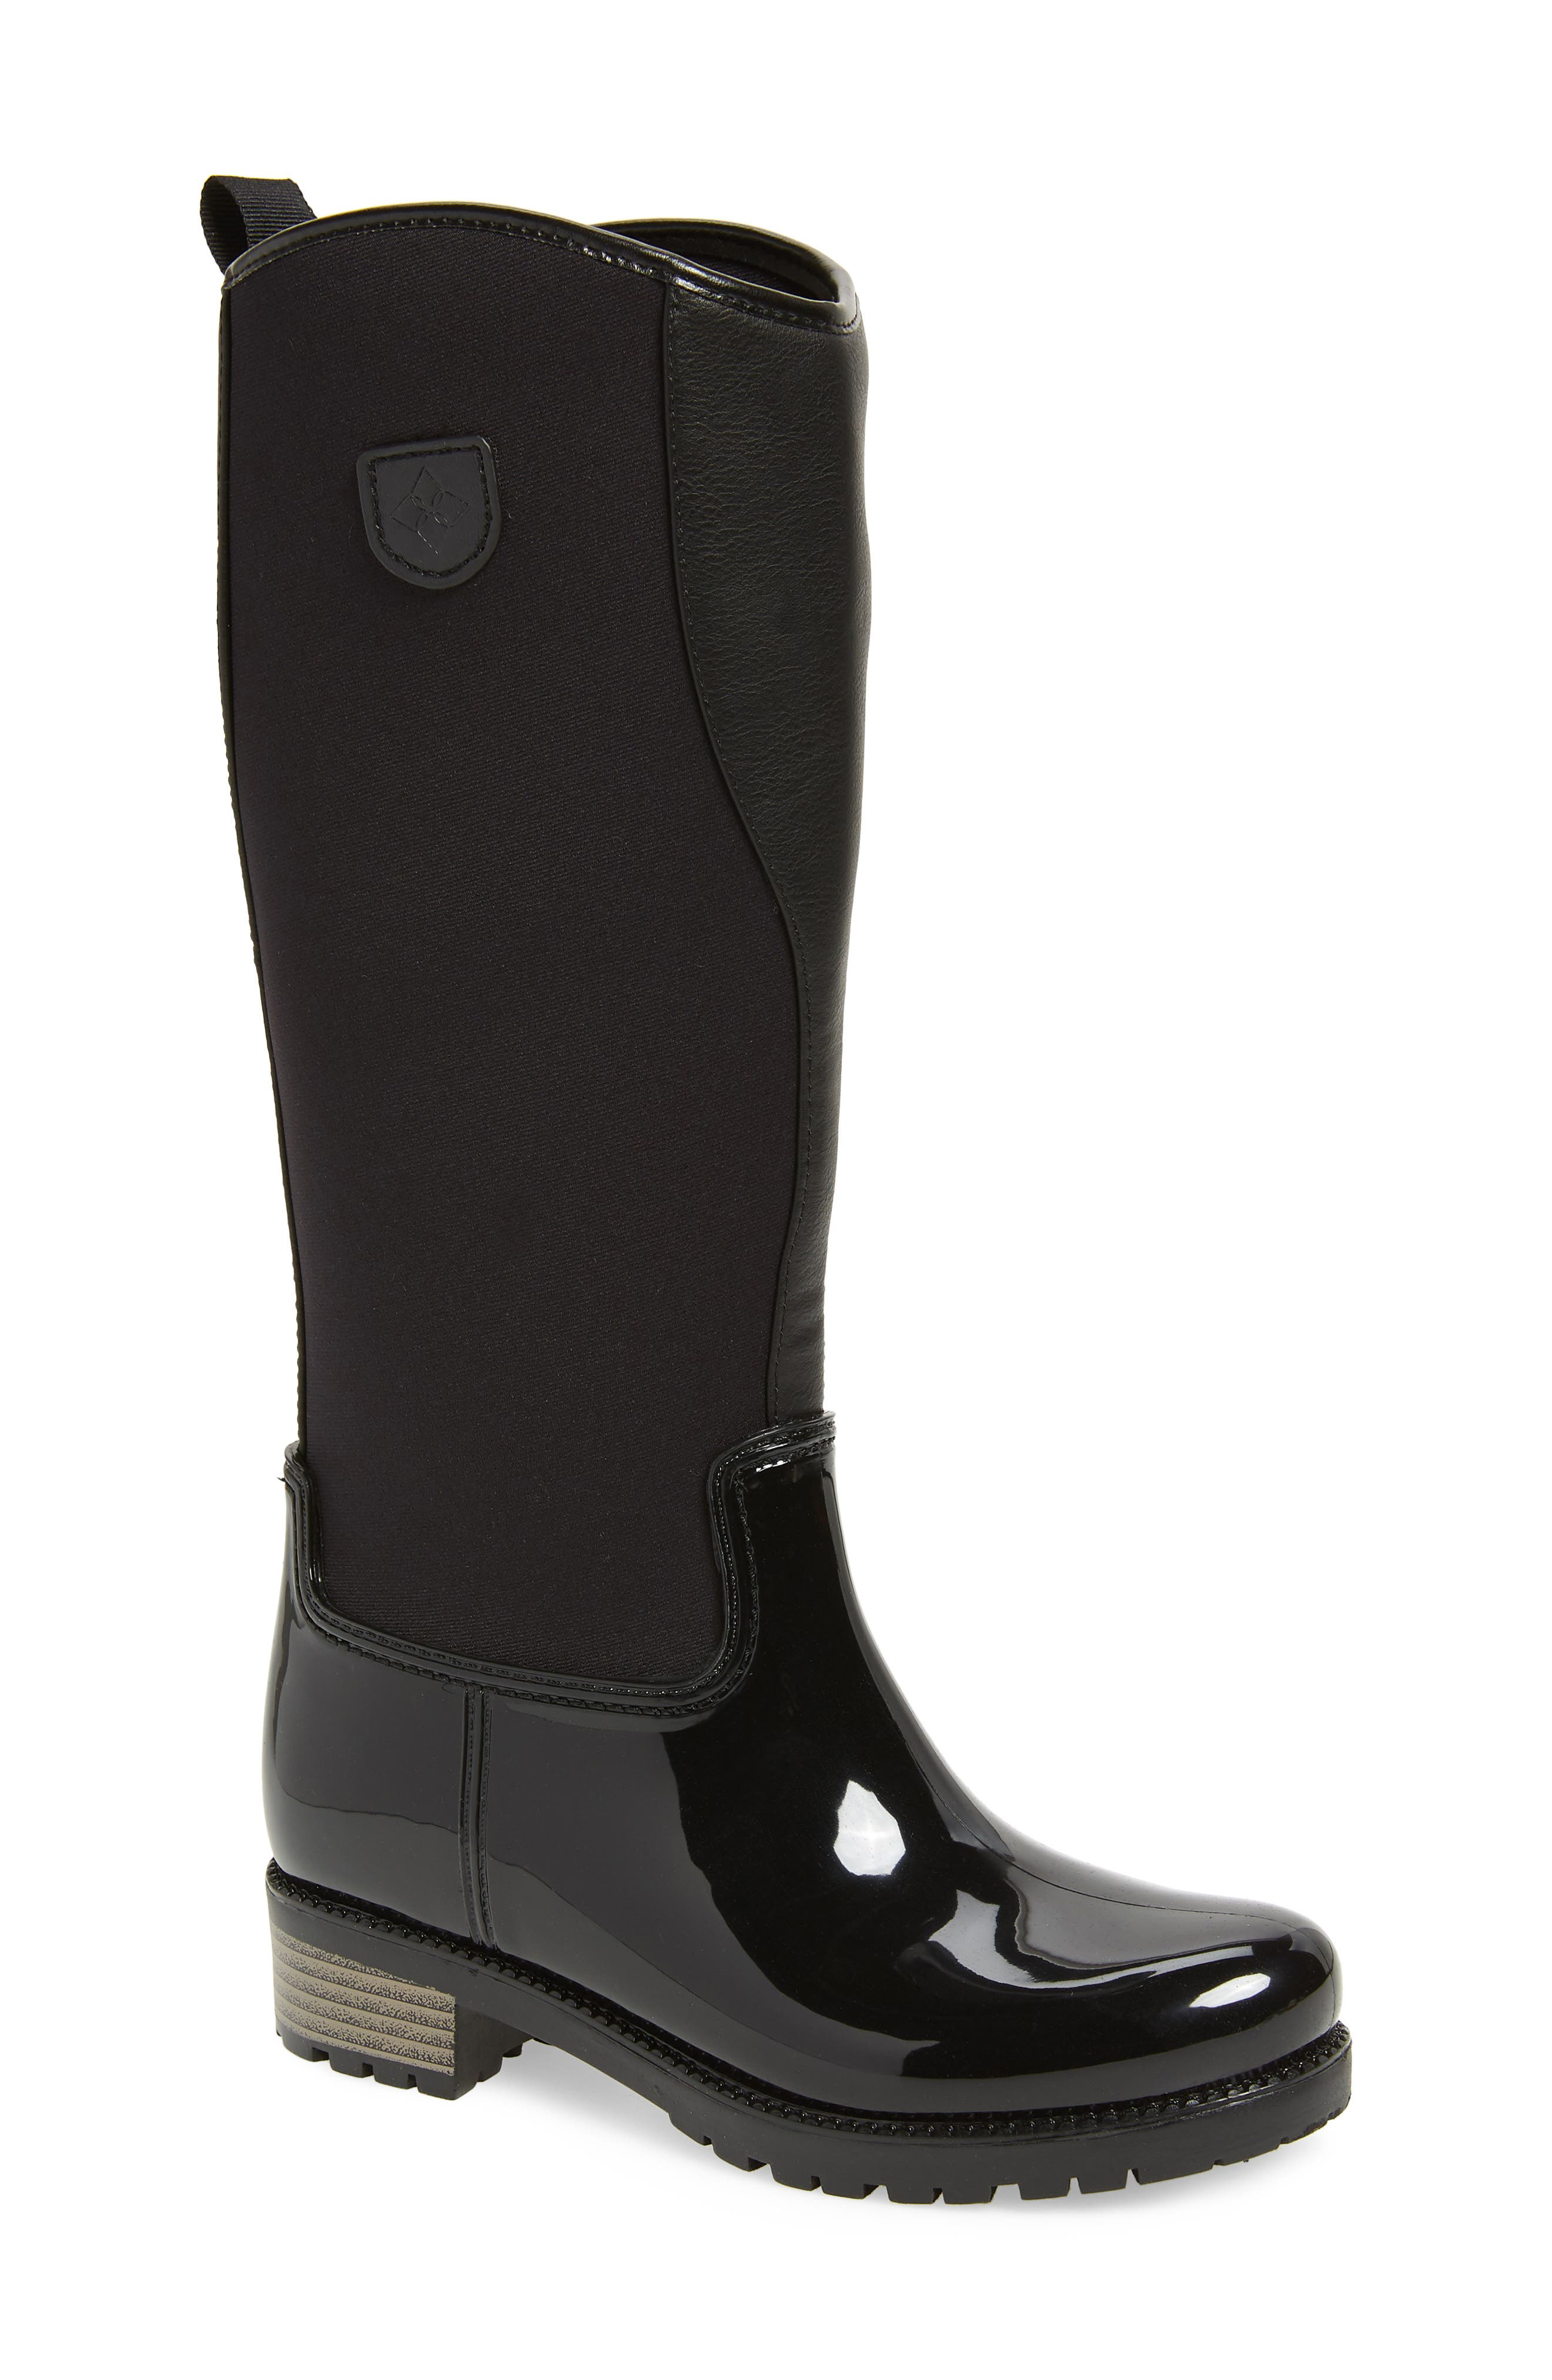 Parma 2 Tall Waterproof Rain Boot,                             Main thumbnail 1, color,                             Black Fabric